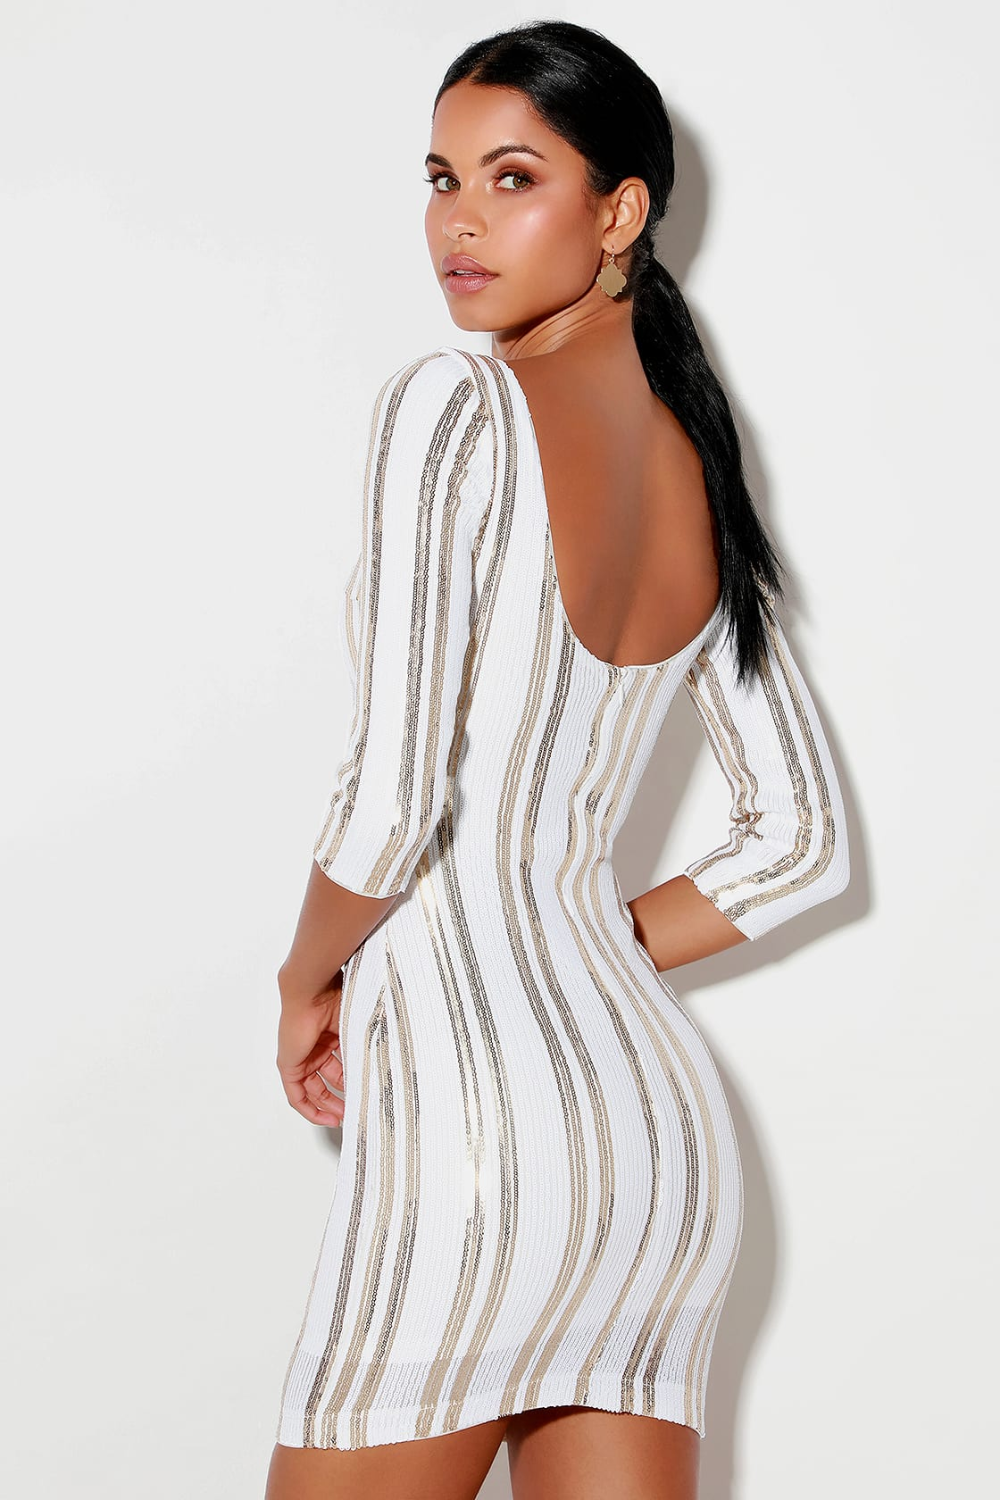 Standing Ovation White And Gold Sequin Striped Bodycon Dress Striped Bodycon Dress Bodycon Dress Lace Bodycon Dress [ 1500 x 1000 Pixel ]